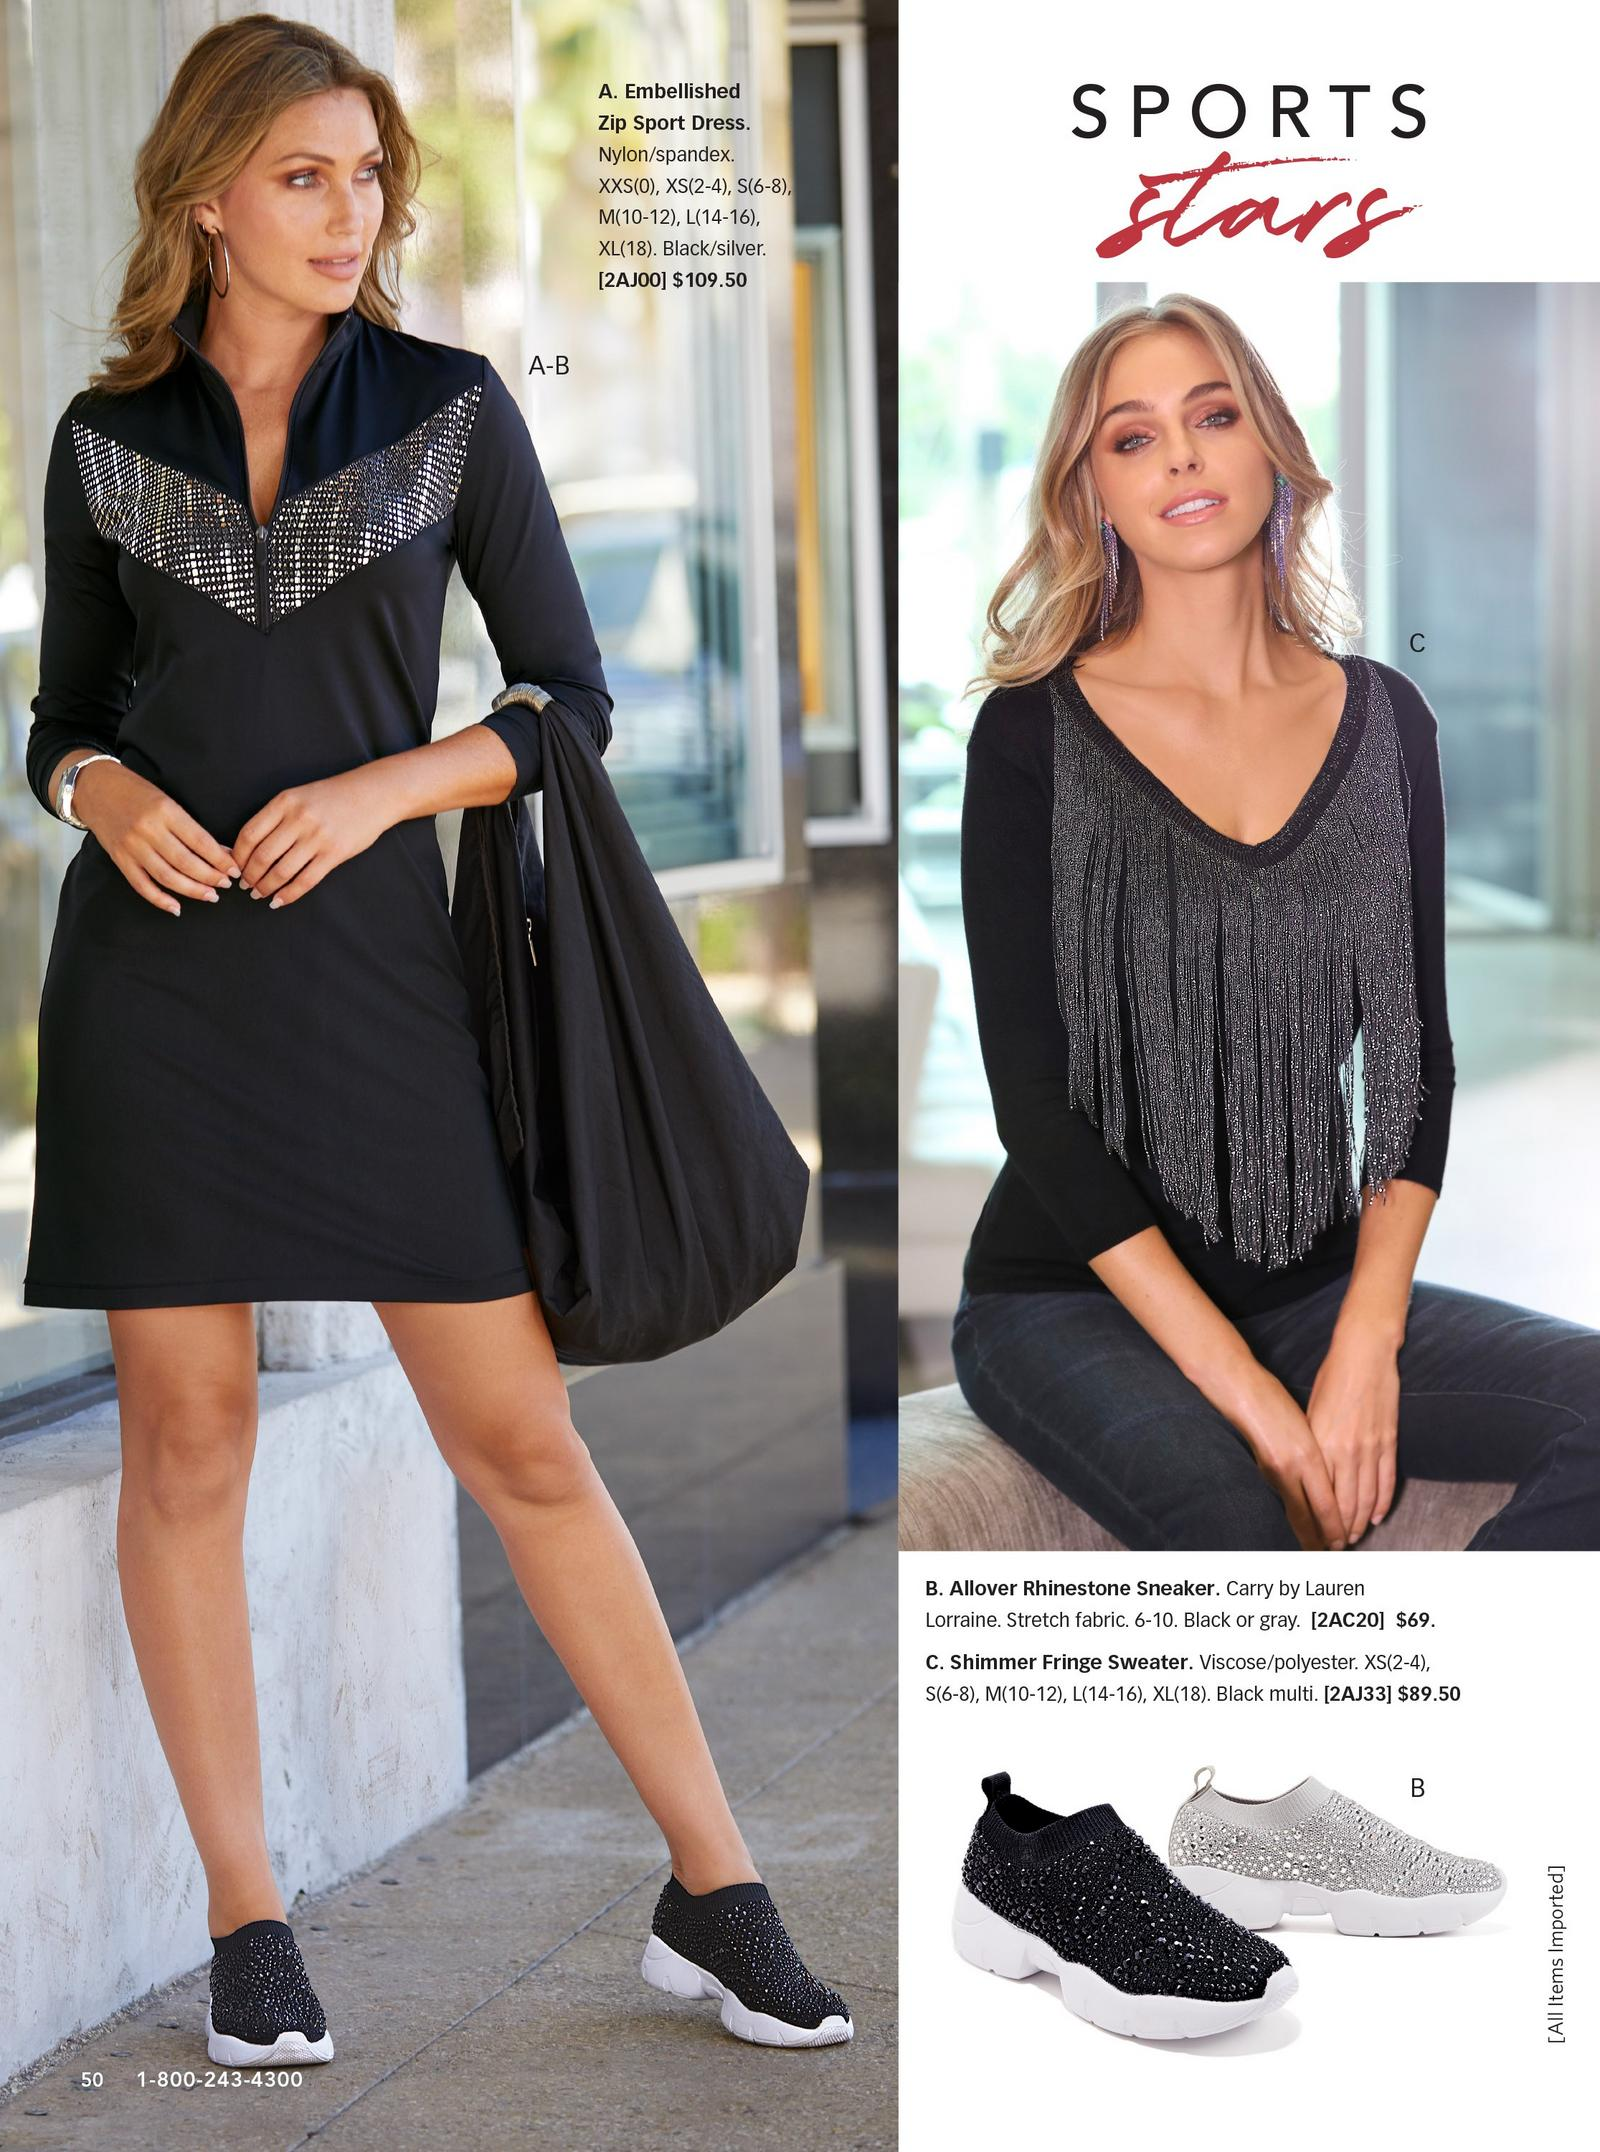 left model wearing embellished zip sport dress in black with black rhinestone sneakers. right model wearing shimmer fringe sweater in black.